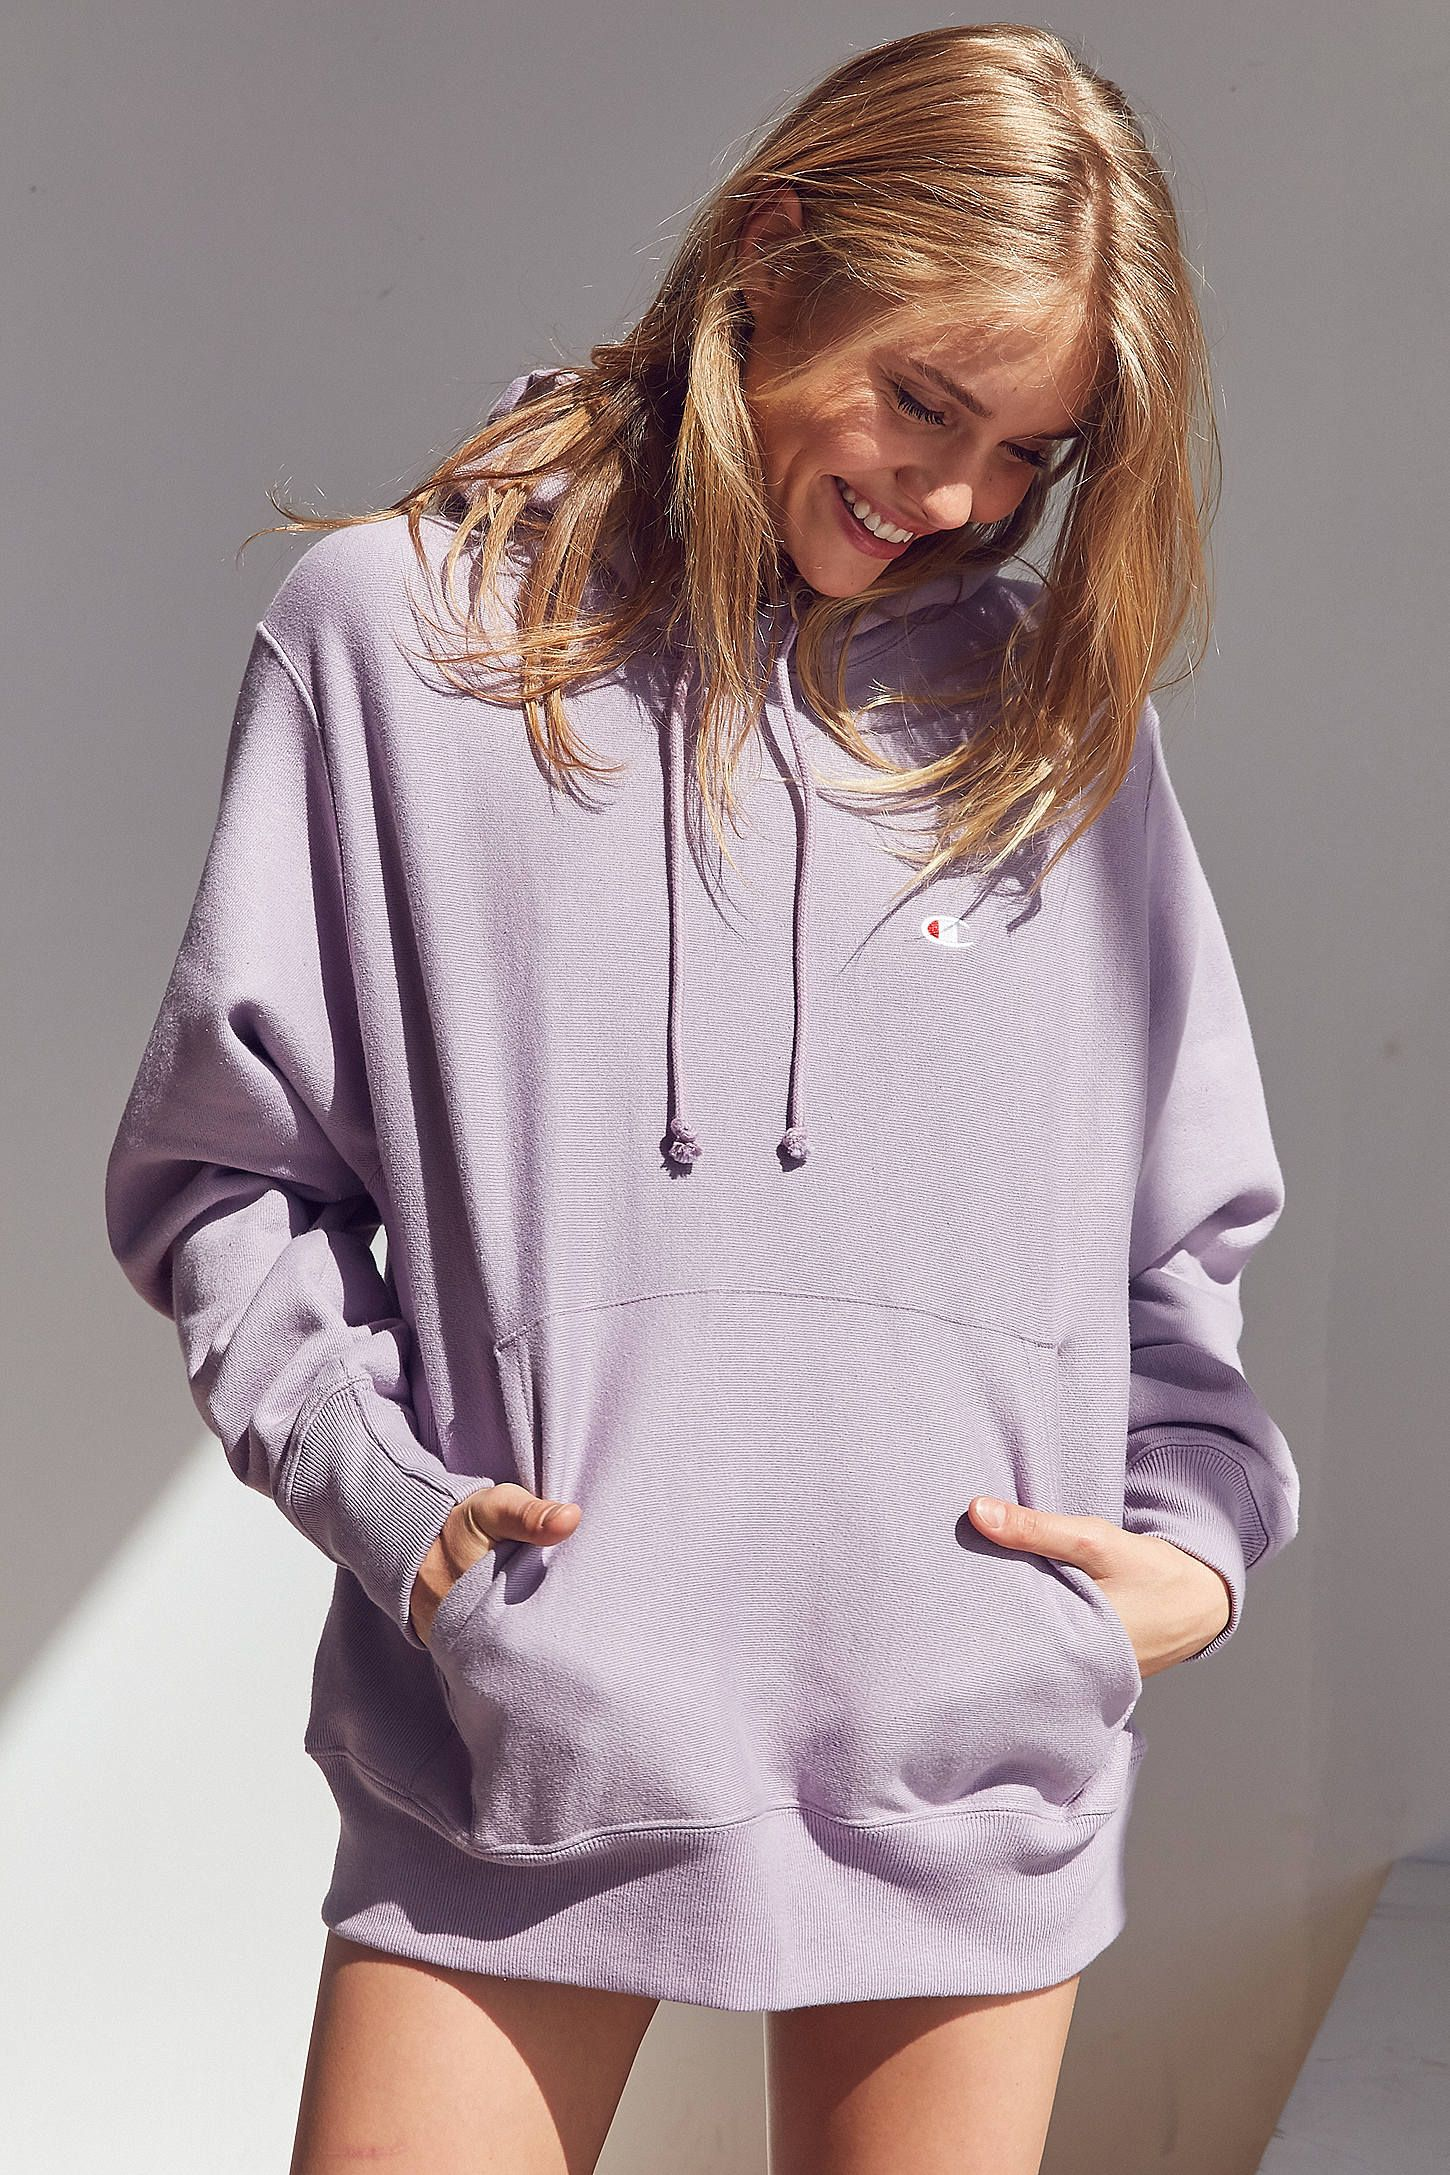 Shop the Champion + UO Reverse Weave Hoodie Sweatshirt and more Urban  Outfitters at Urban Outfitters. Read customer reviews e830f96e4